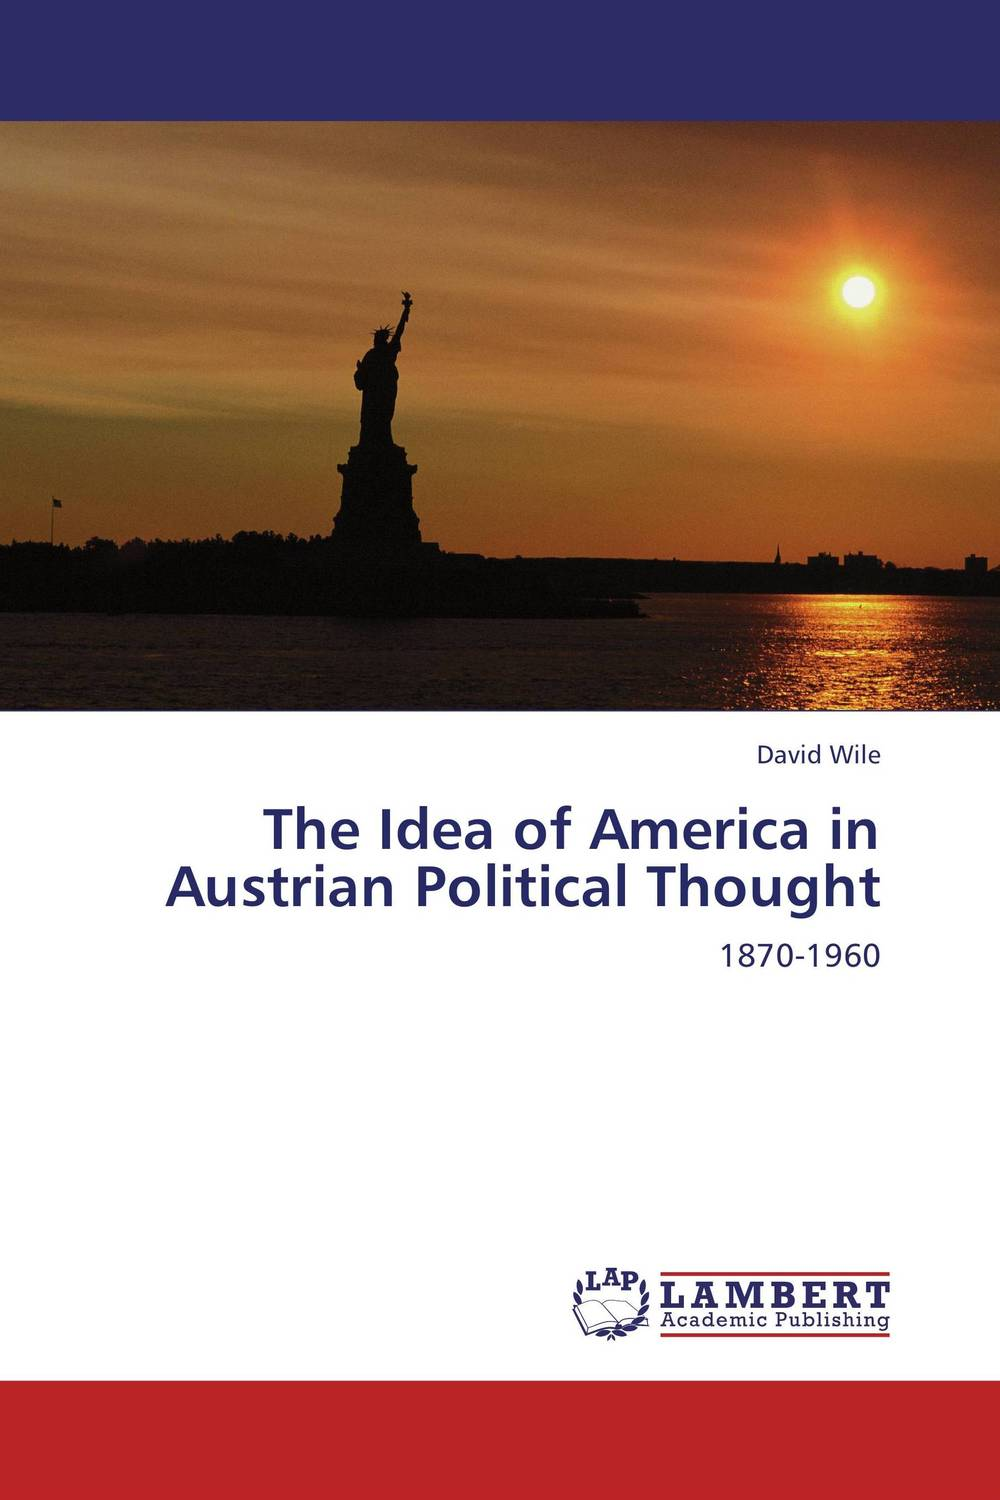 The Idea of America in Austrian Political Thought who thought this was a good idea